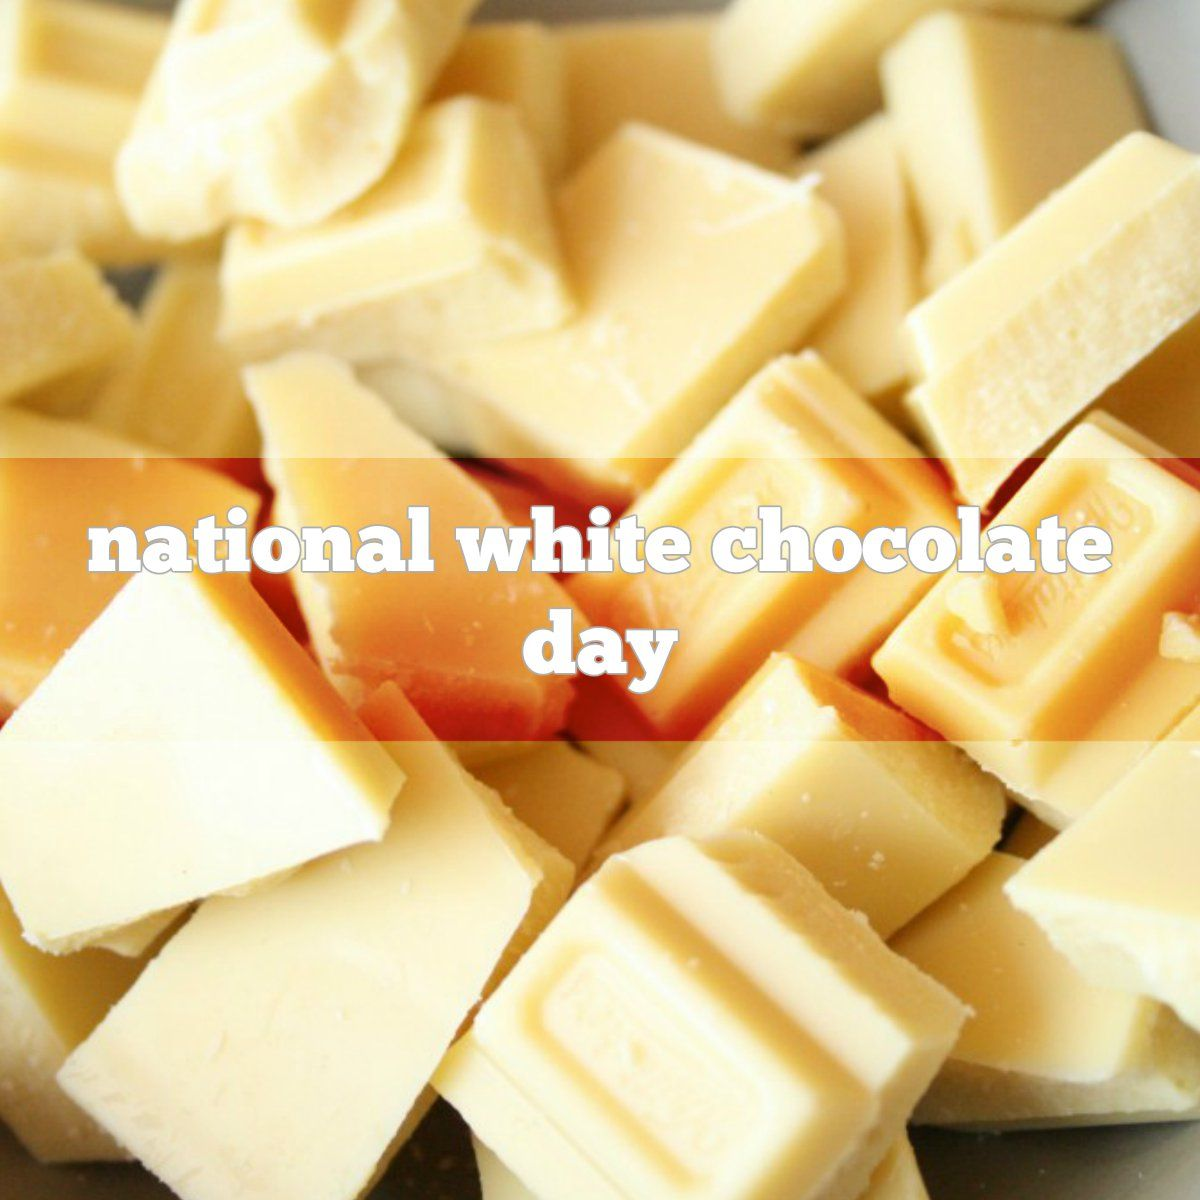 September 22 Is National White Chocolate Day Chocolate Day White Chocolate Chocolate